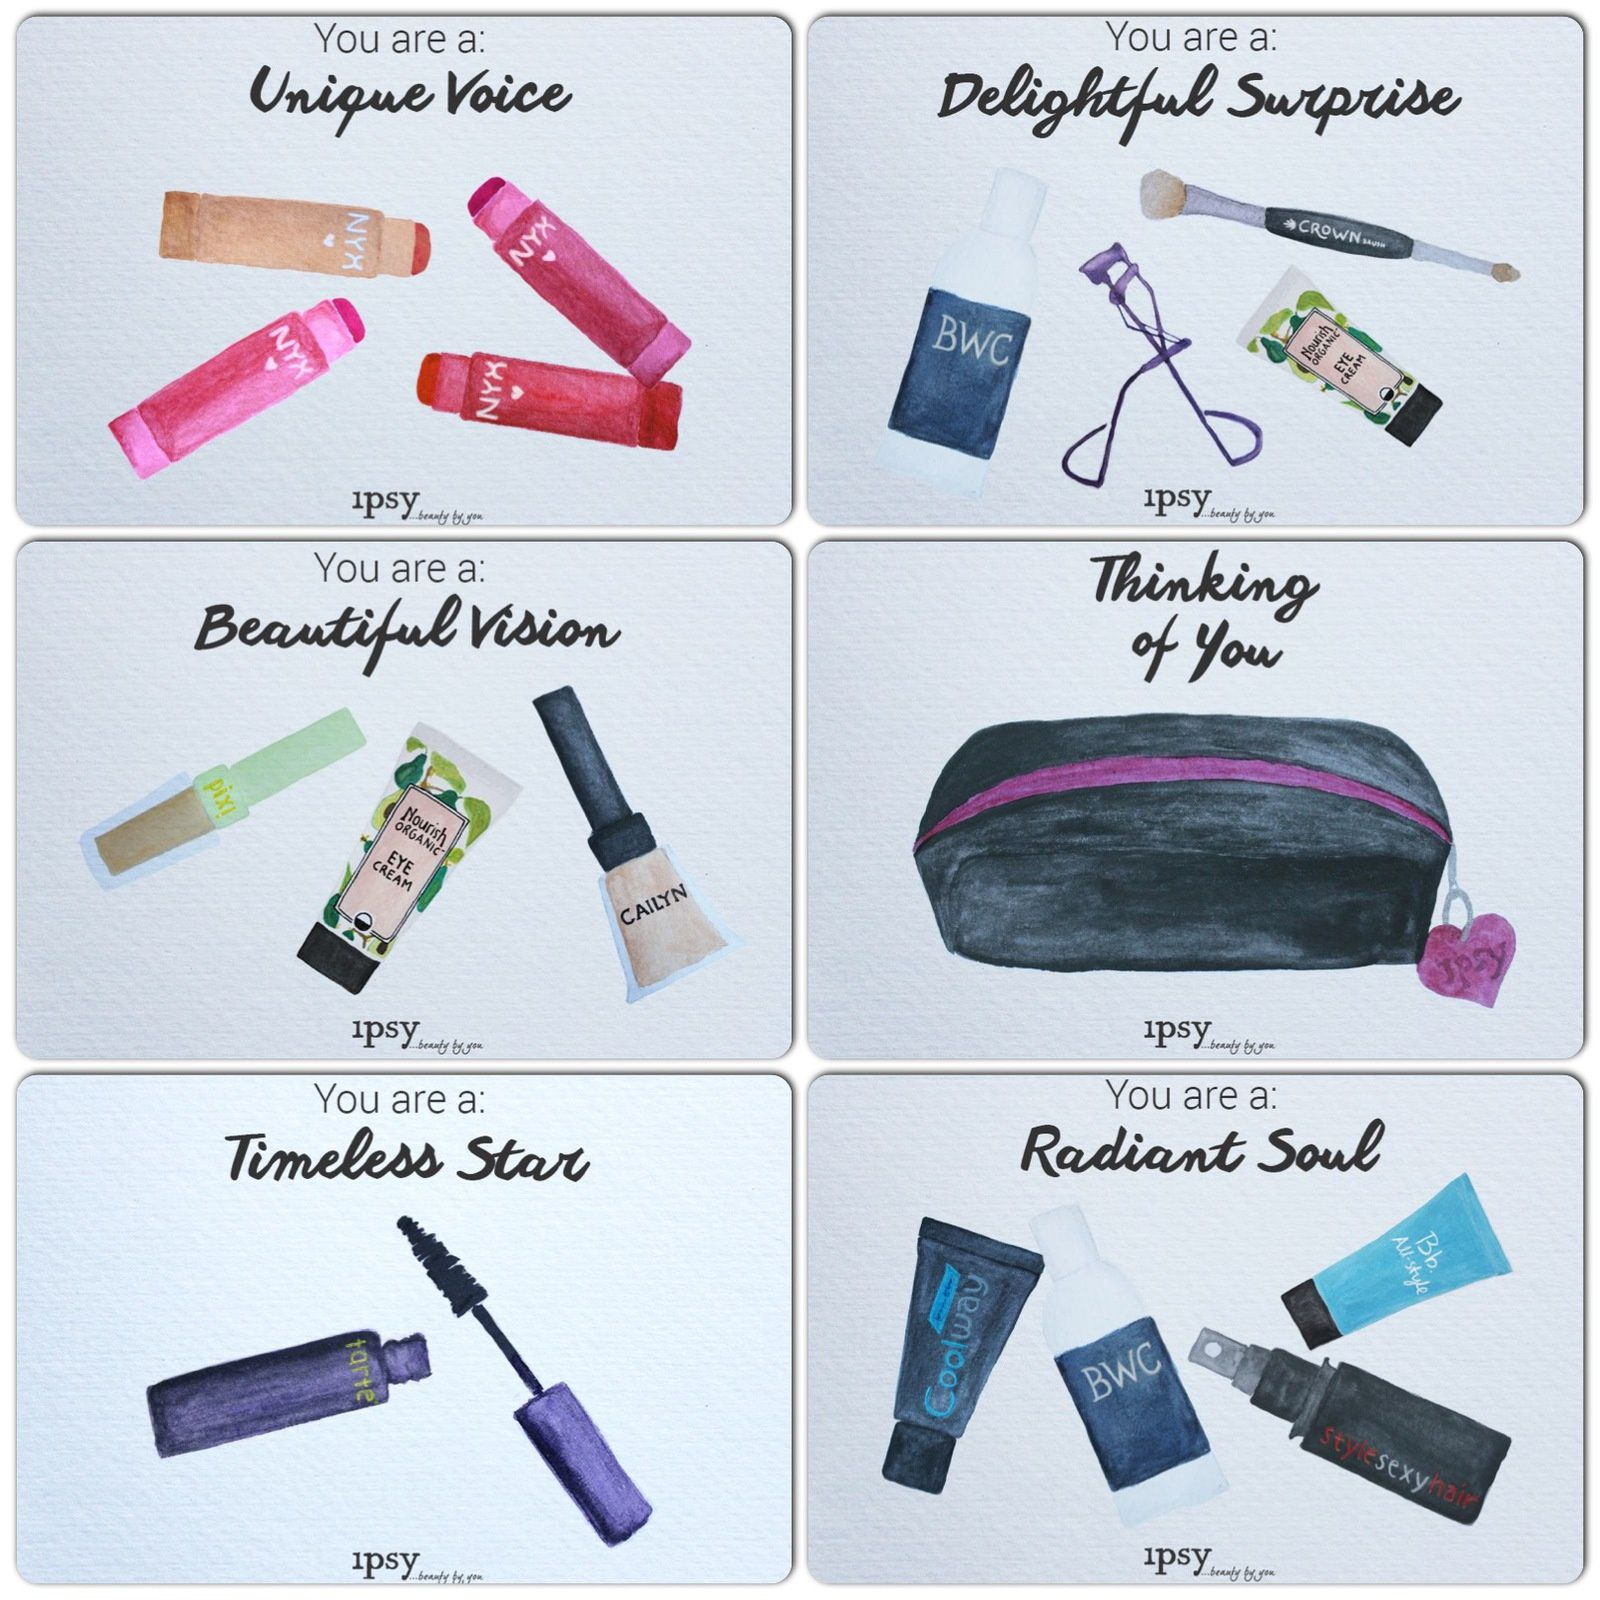 Ipsy December 2014 - Thinking of You